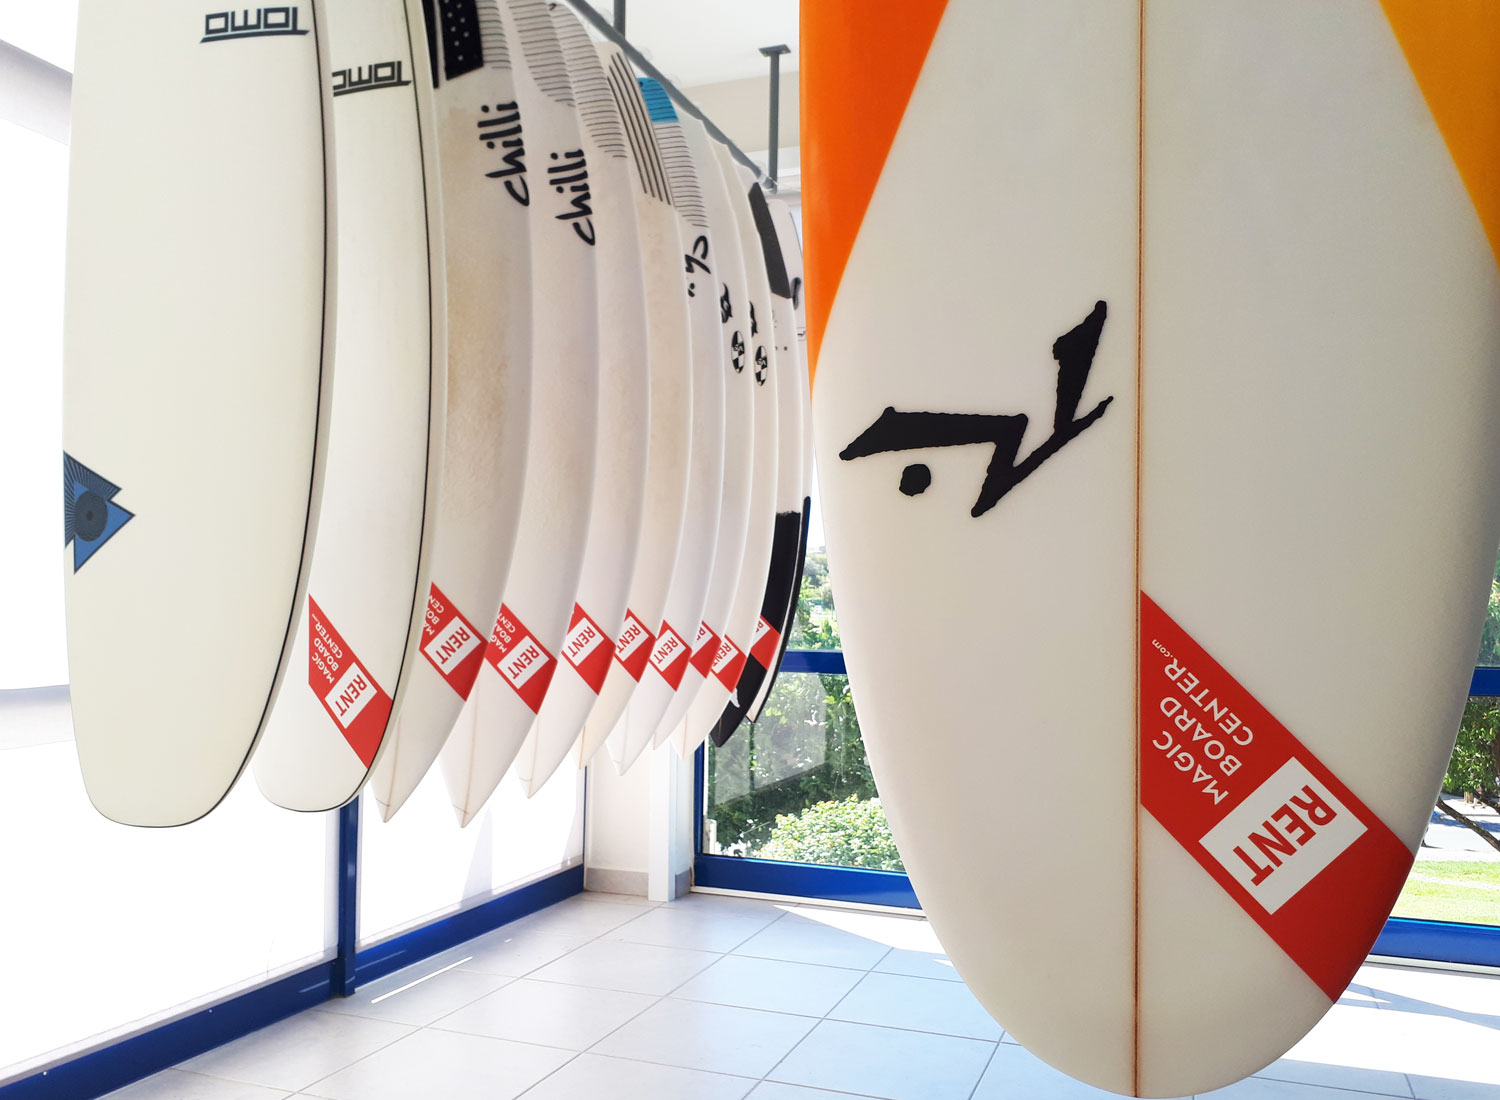 Test drive surfboards in Lagos Portugal (Magic Board Center)